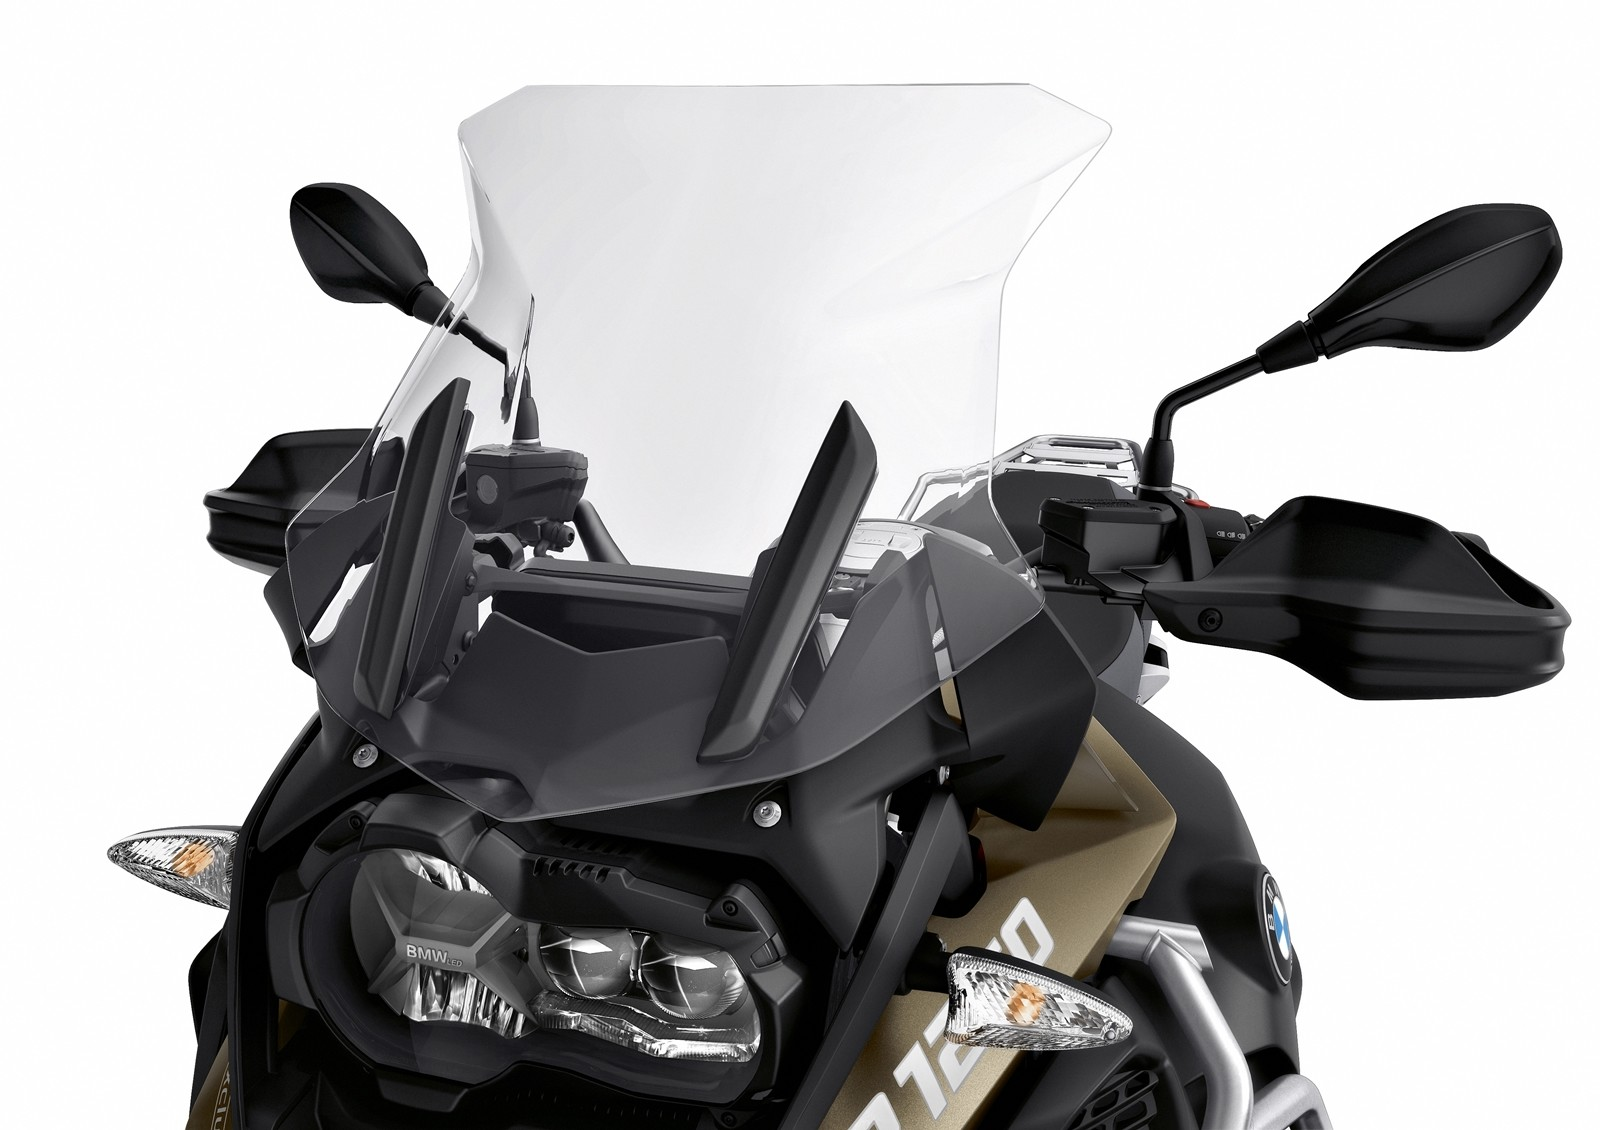 Foto de BMW R 1250 GS Adventure 2019 (35/37)